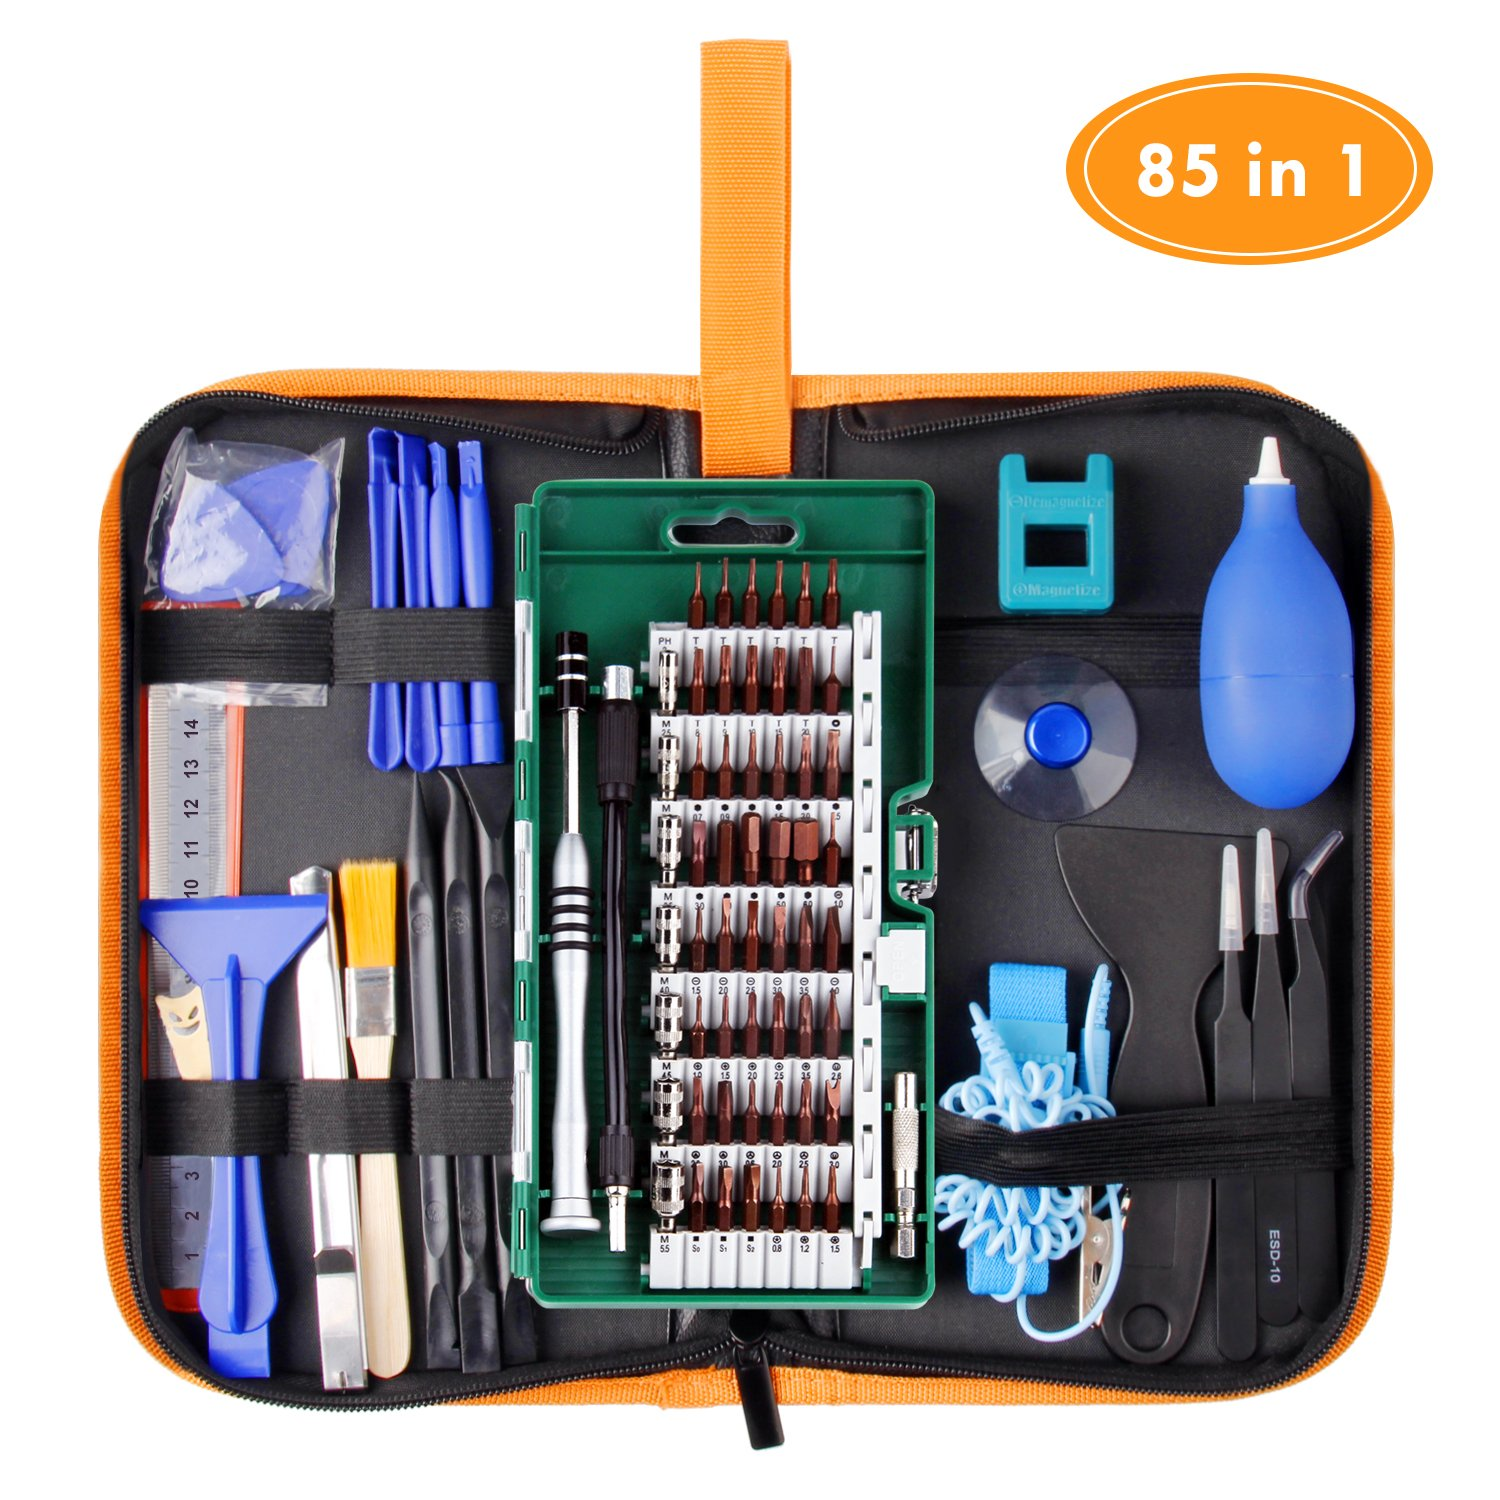 WOWGO Precision Screwdriver Set, 85 in 1 Cell Phone Repair Tool Kit, Magnetic Driver Kit with Portable Bag for iPad, PC, Laptop,Watch